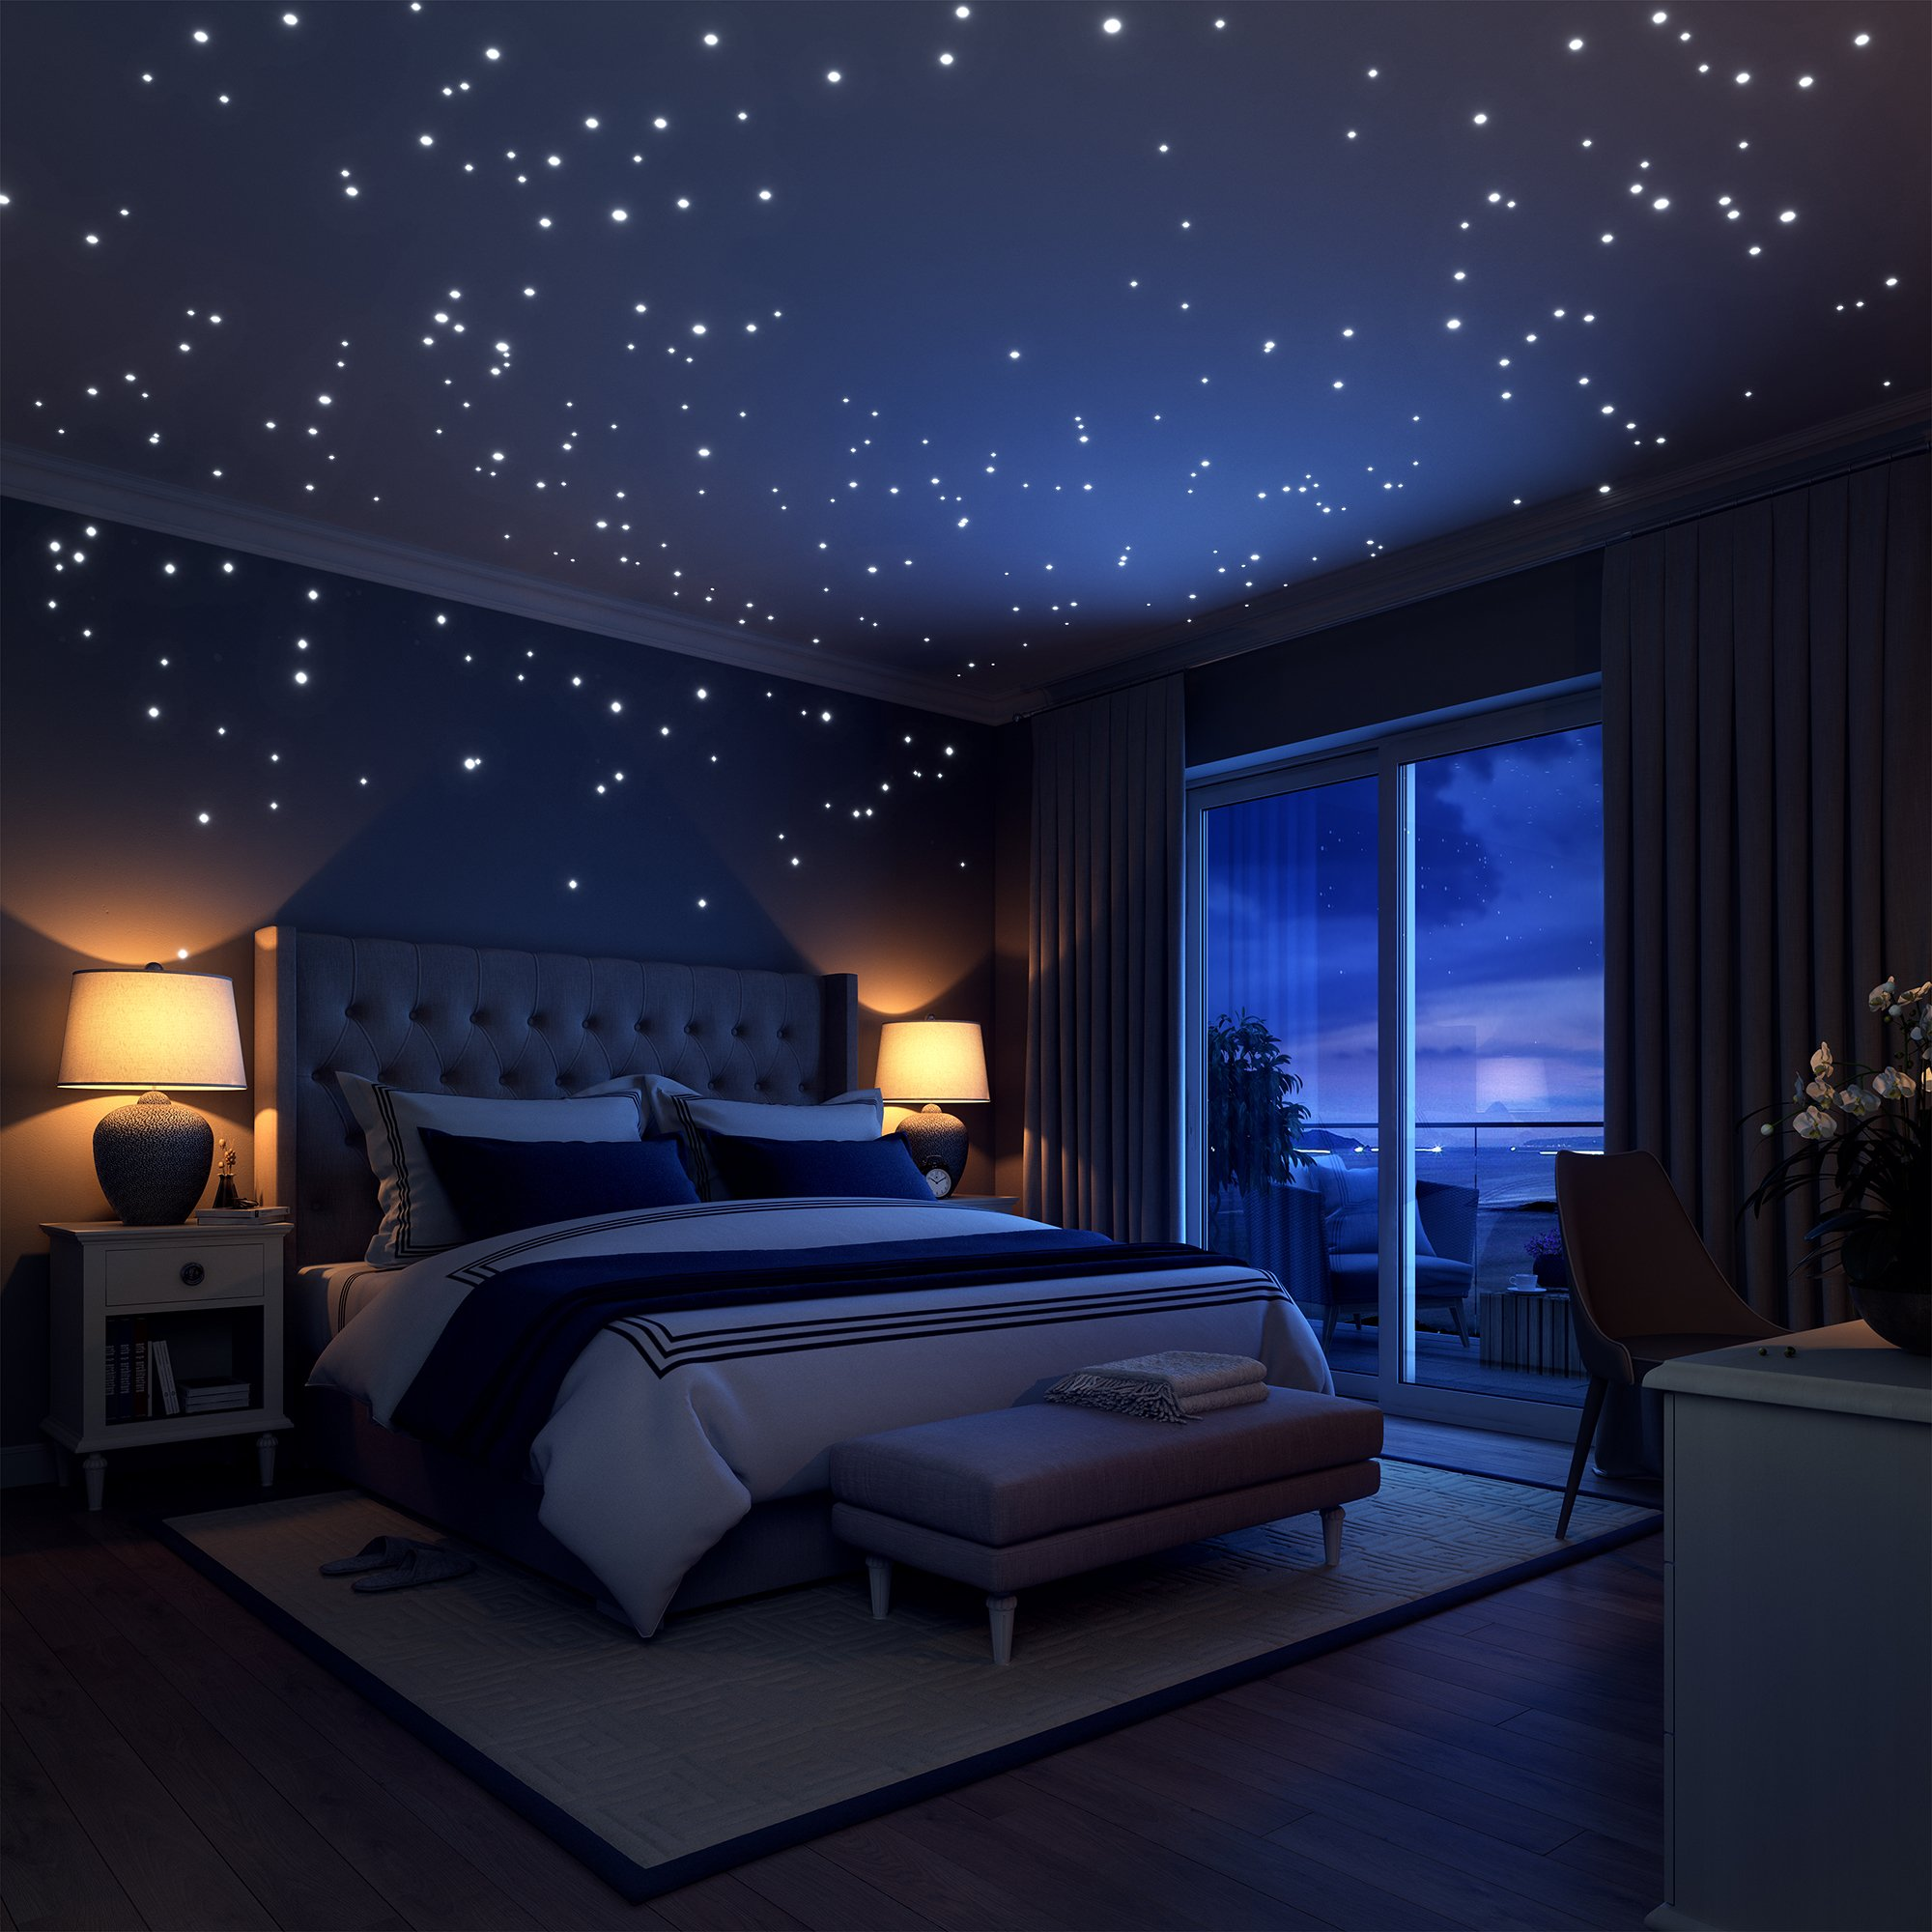 Amazon.com: MAFOX Glow in the Dark Wall or Ceiling Moon Stickers ...